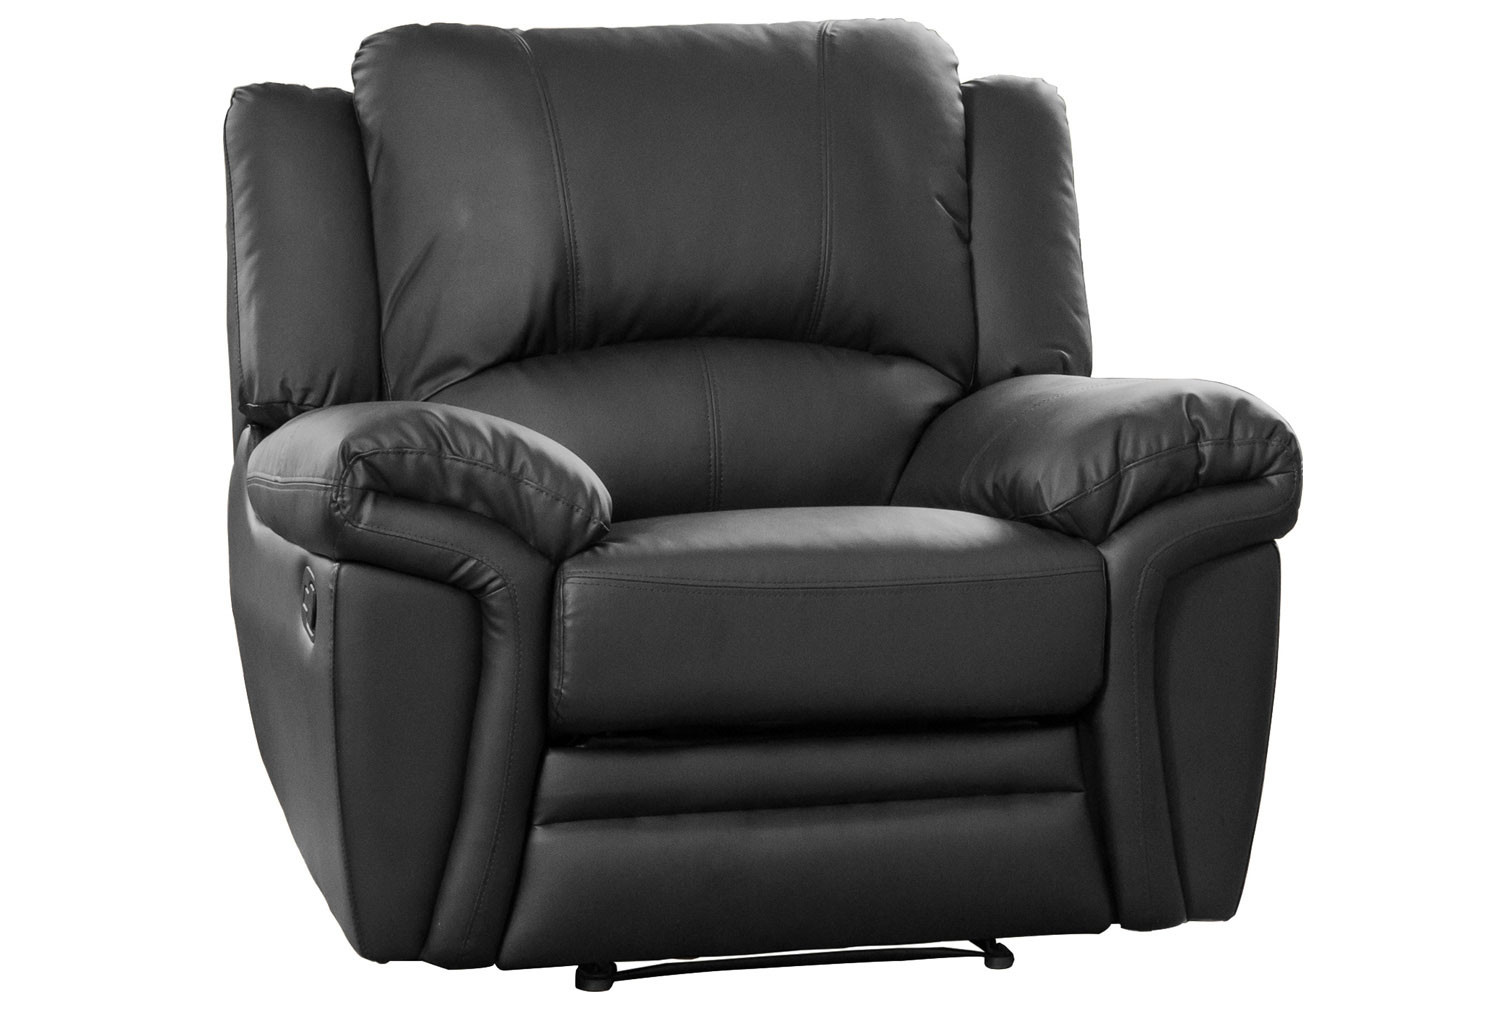 Clavet Leather Recliner Armchair